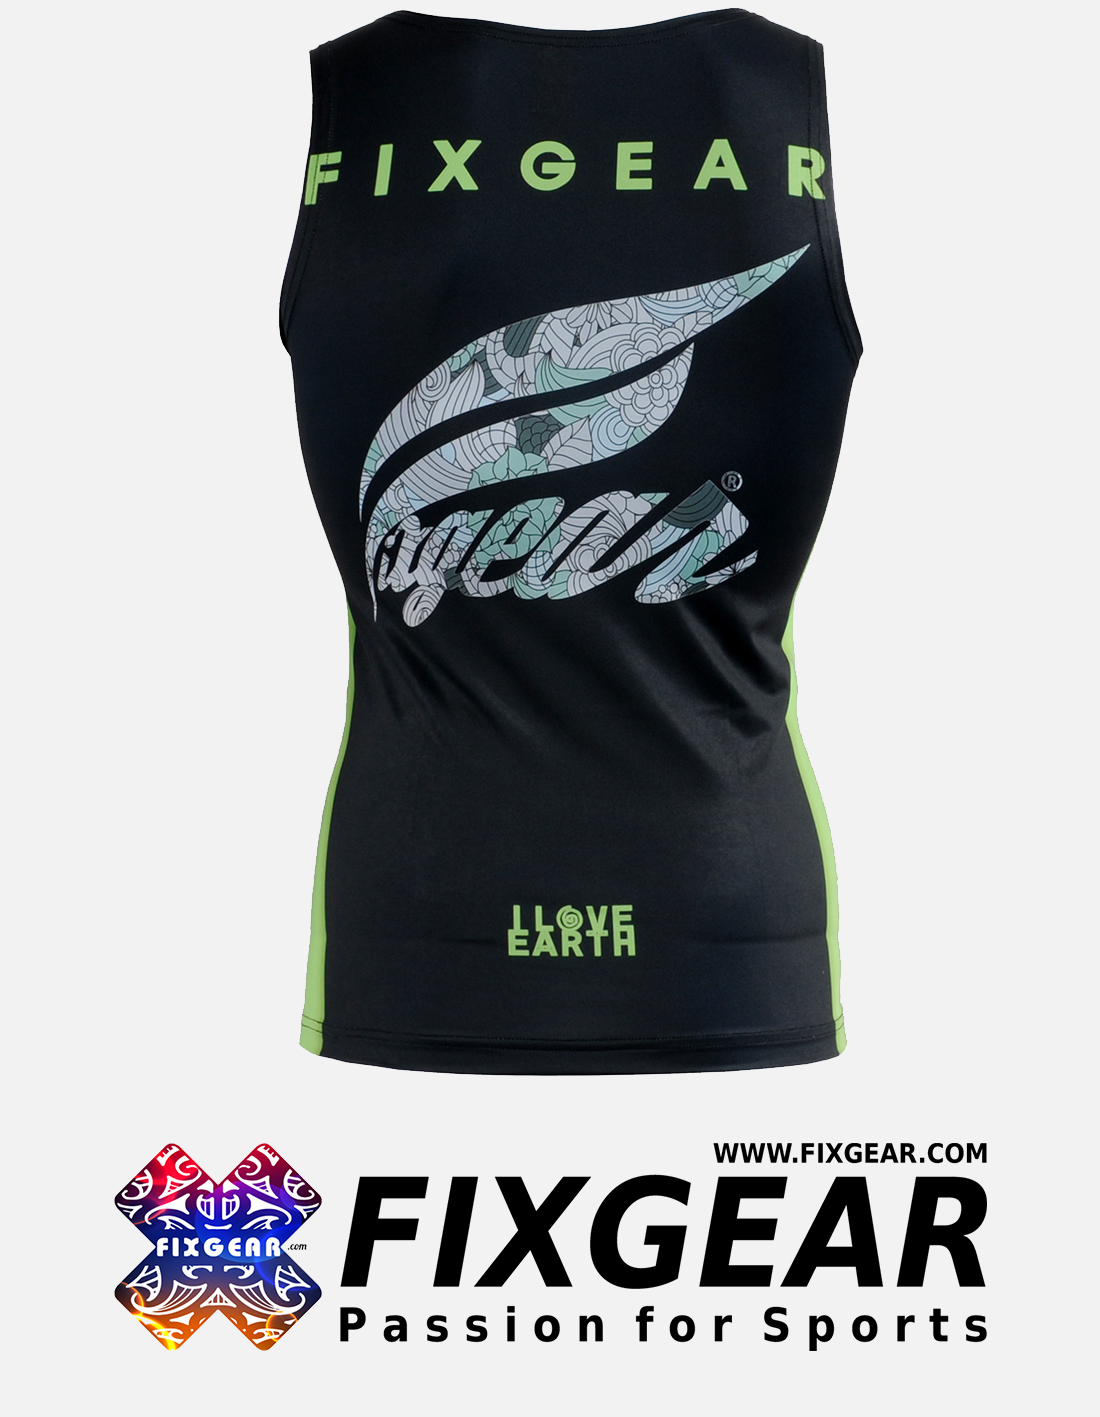 FIXGEAR CFN-L12K Compression Base Layer Sleeveless Shirt